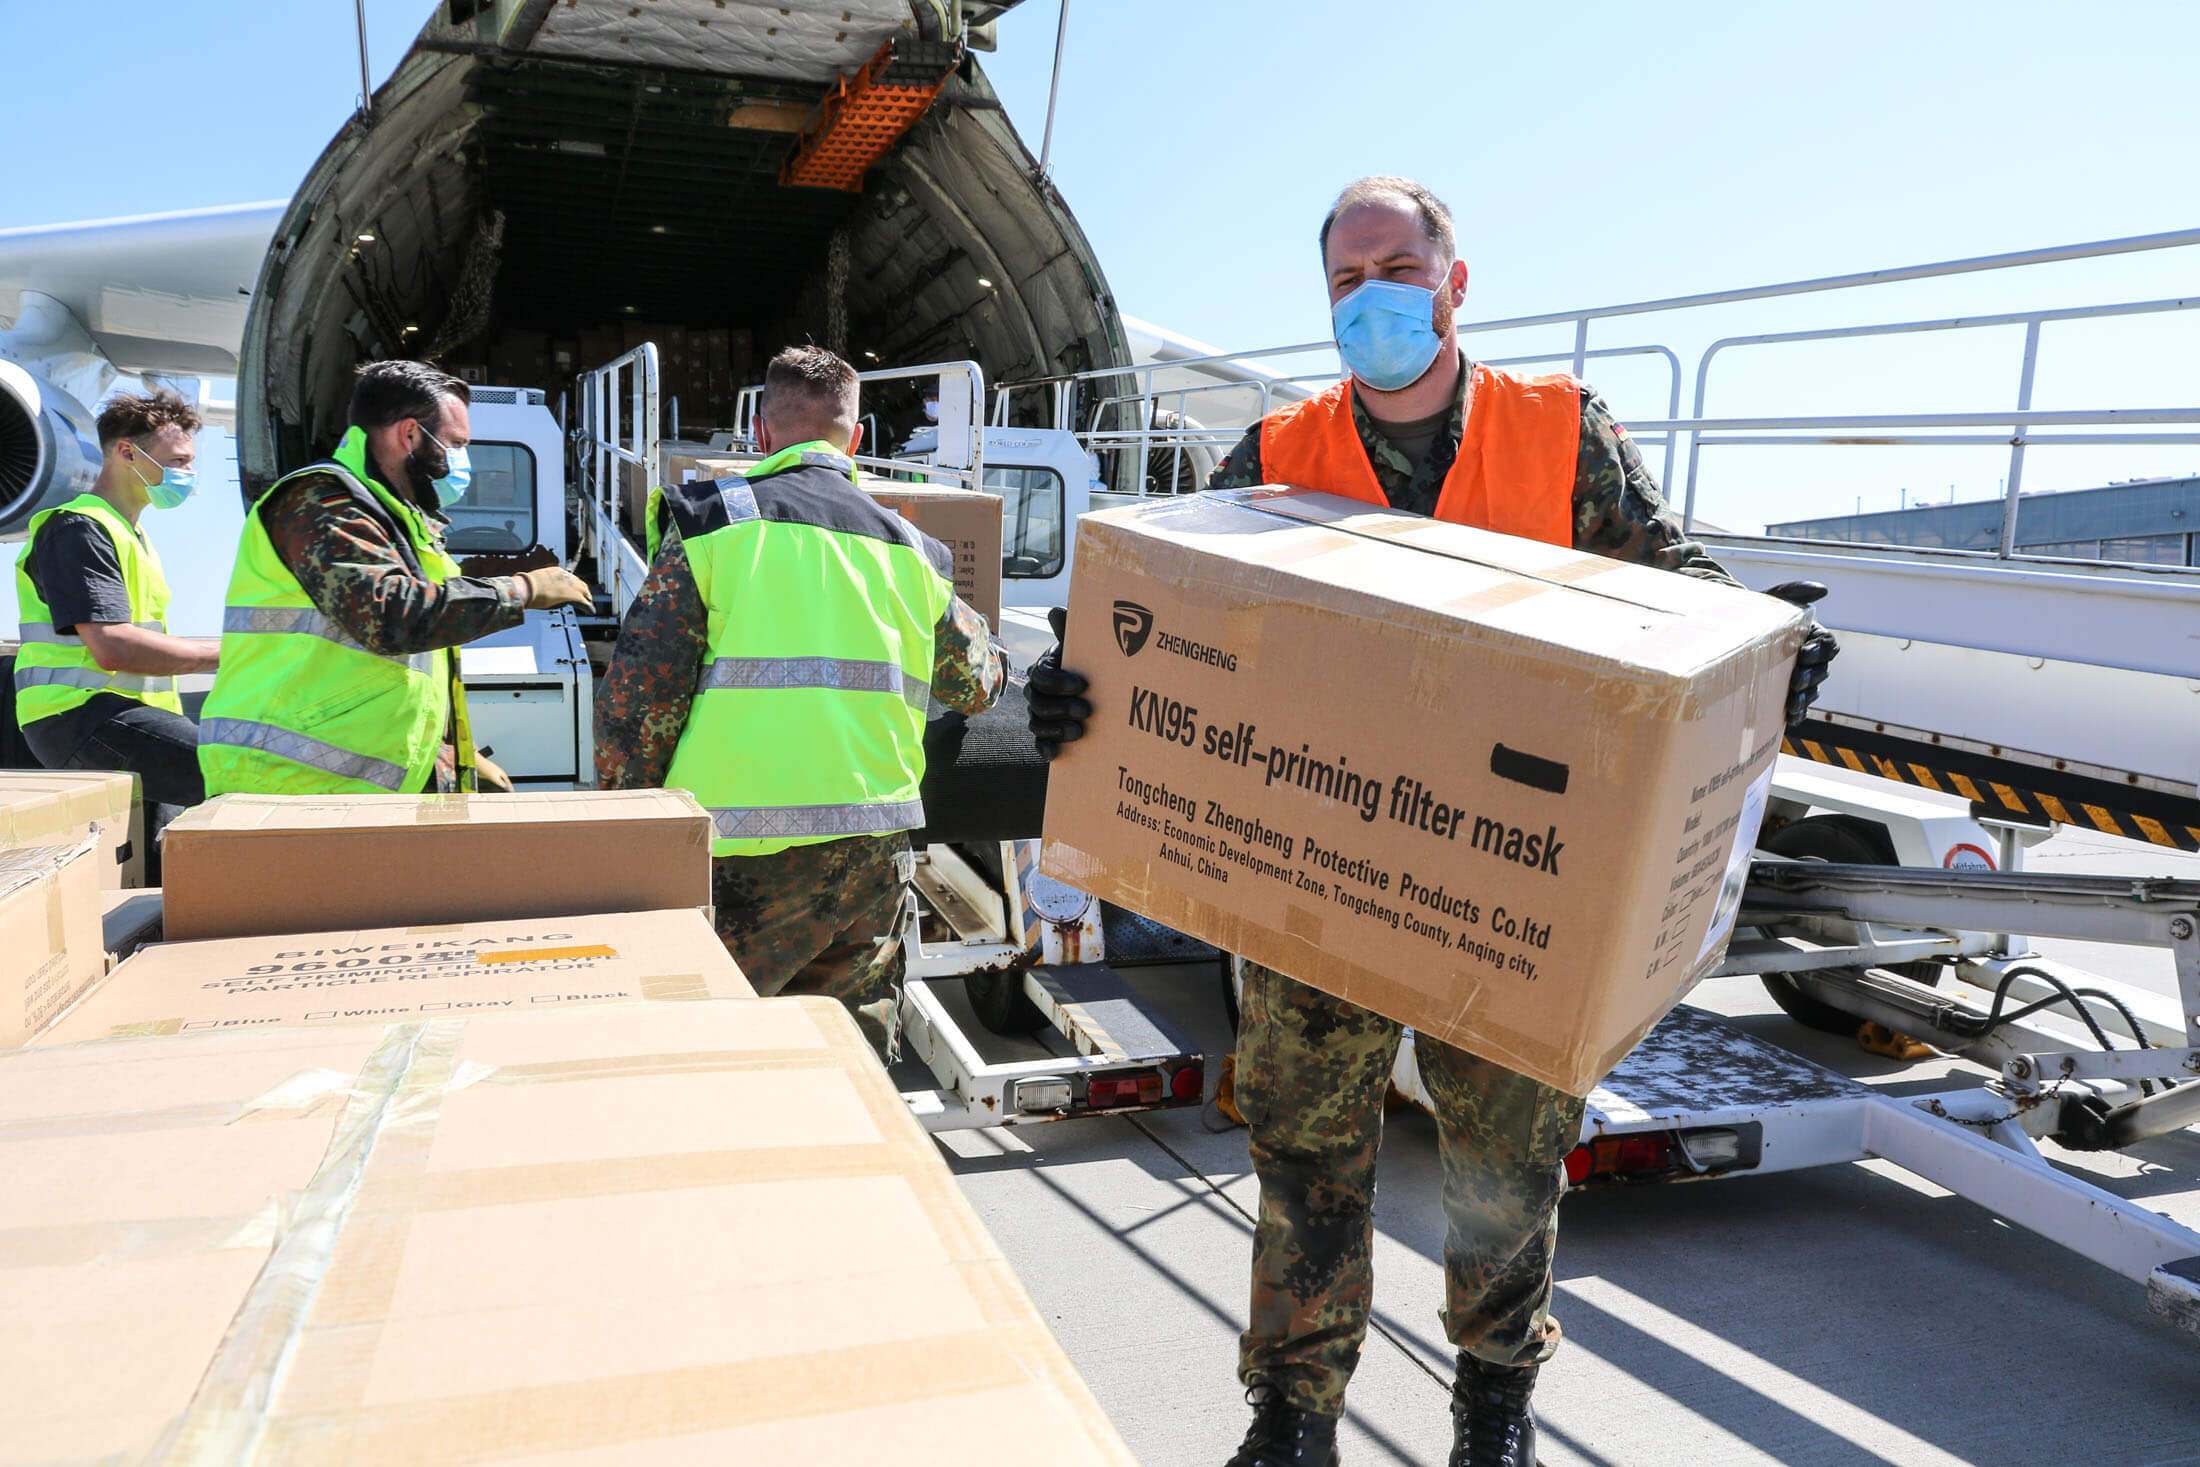 Yinghong-The largest plane in the world arrived in Germany on Monday (27 April 2020) from China bringing urgent medical supplies as part of efforts to help curb the spread of the coronavirus- NATO